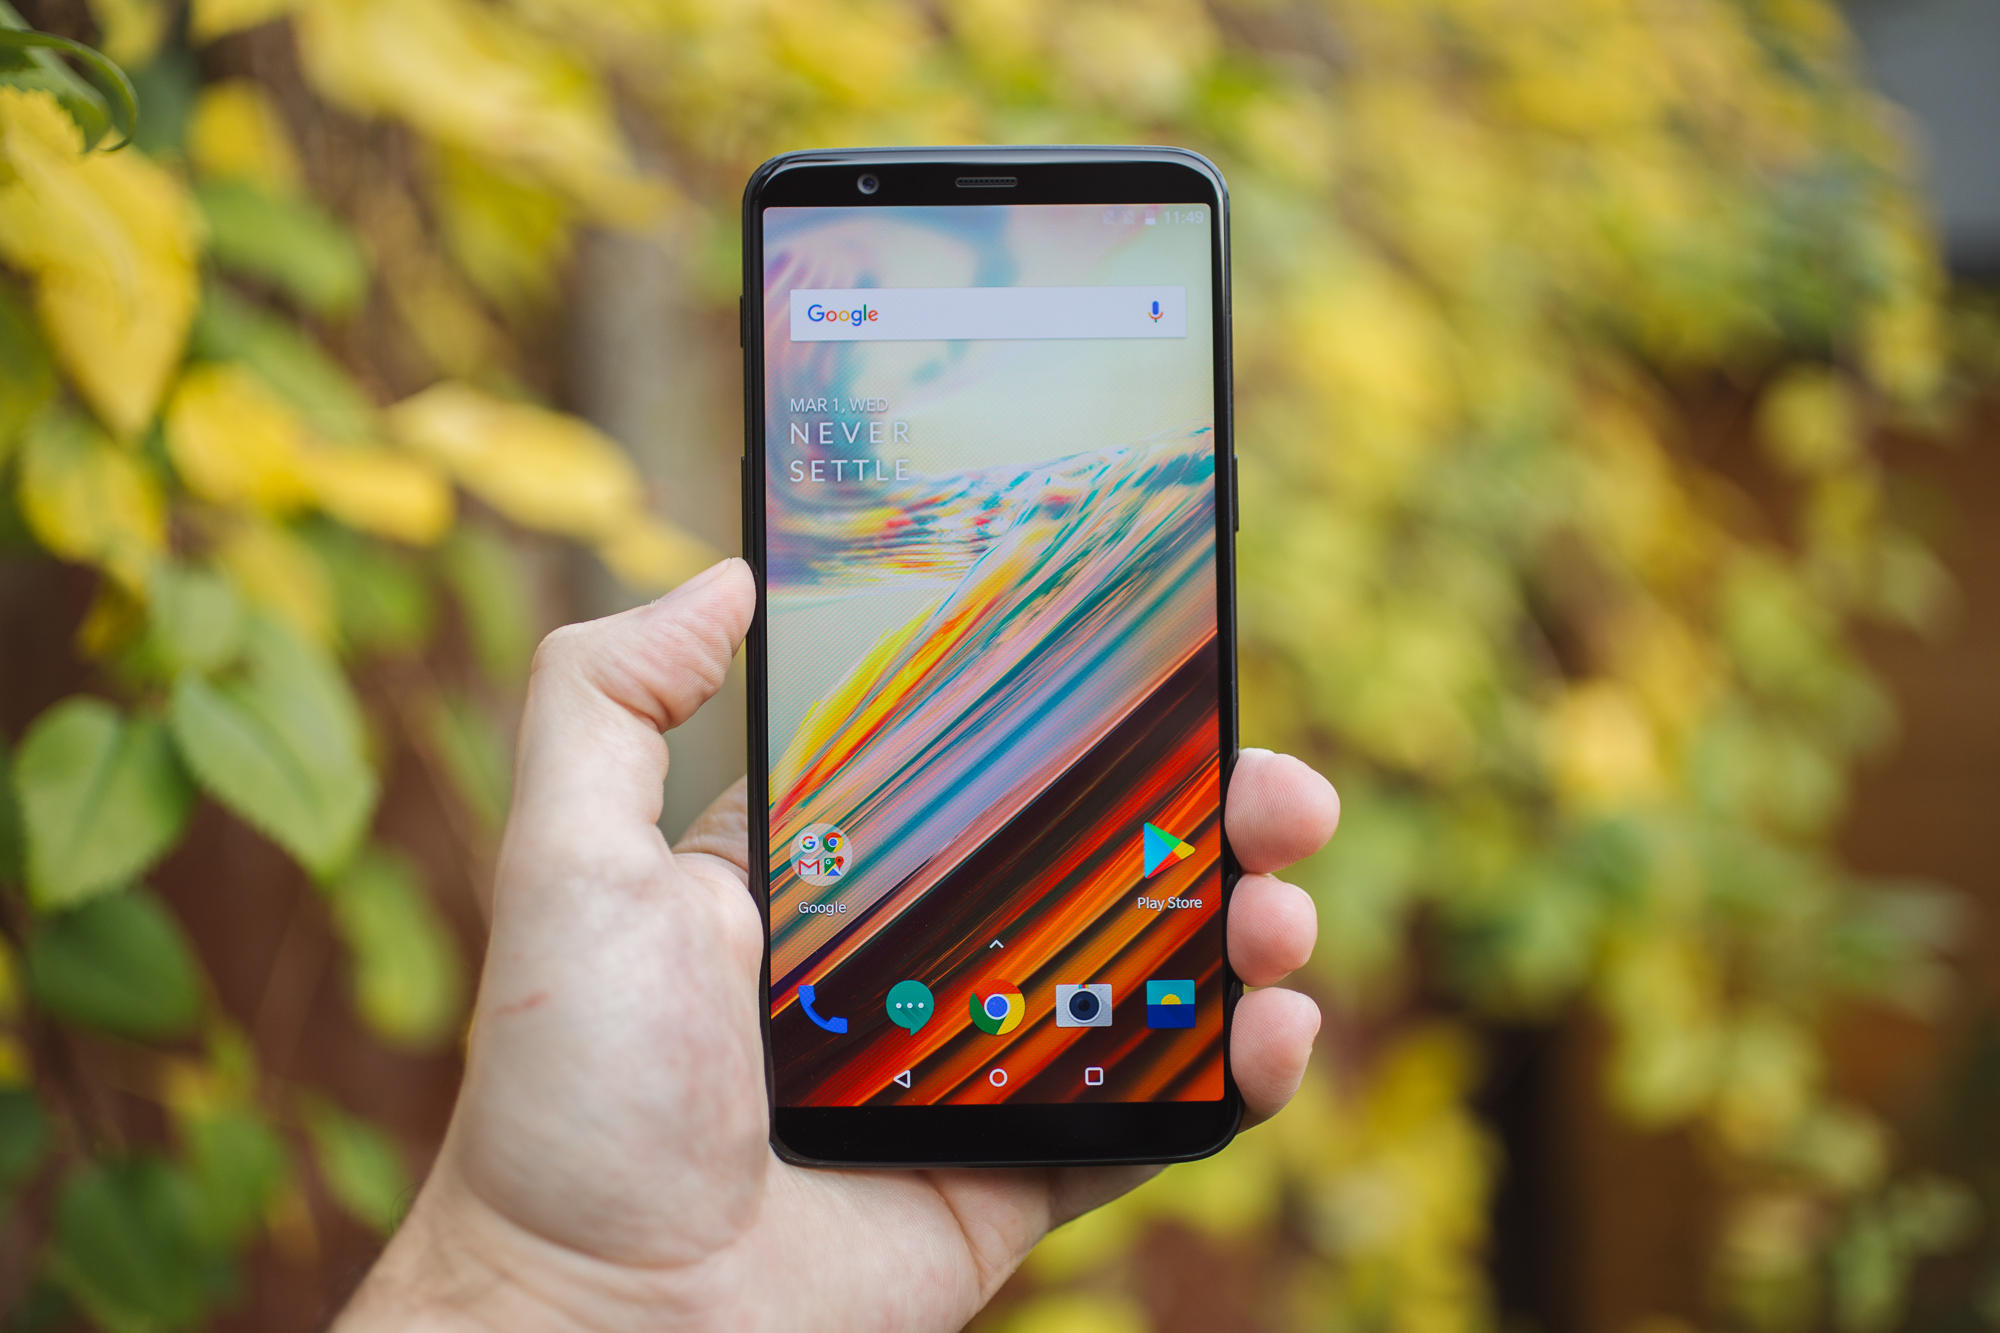 oneplus-5t-product-20